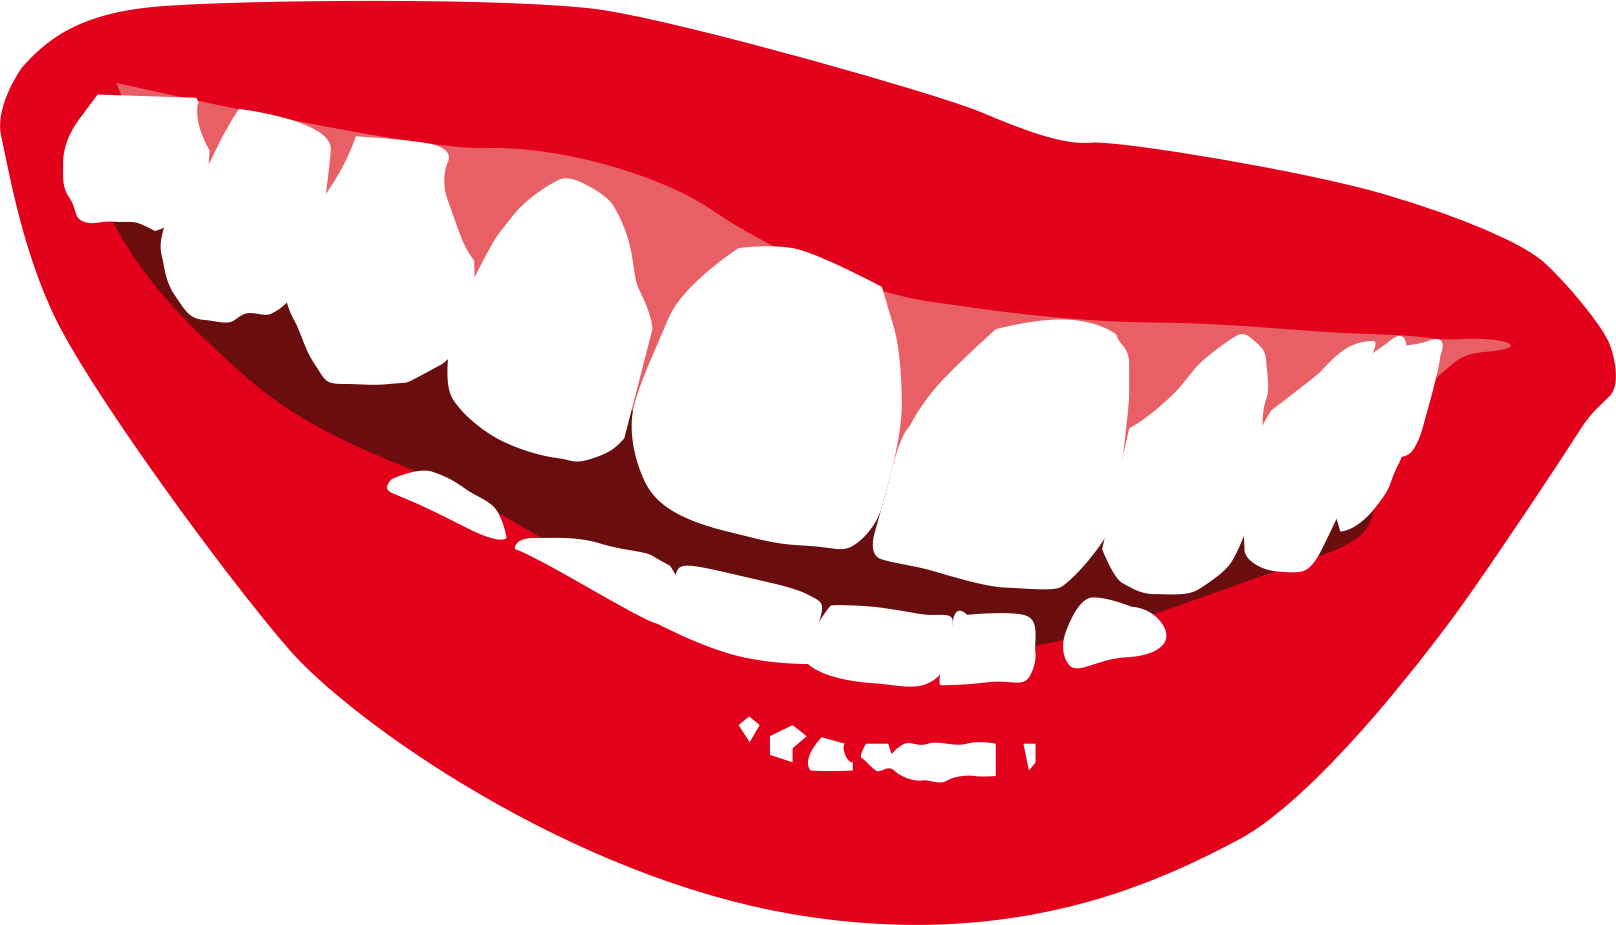 Free png image. Mouth smile images download